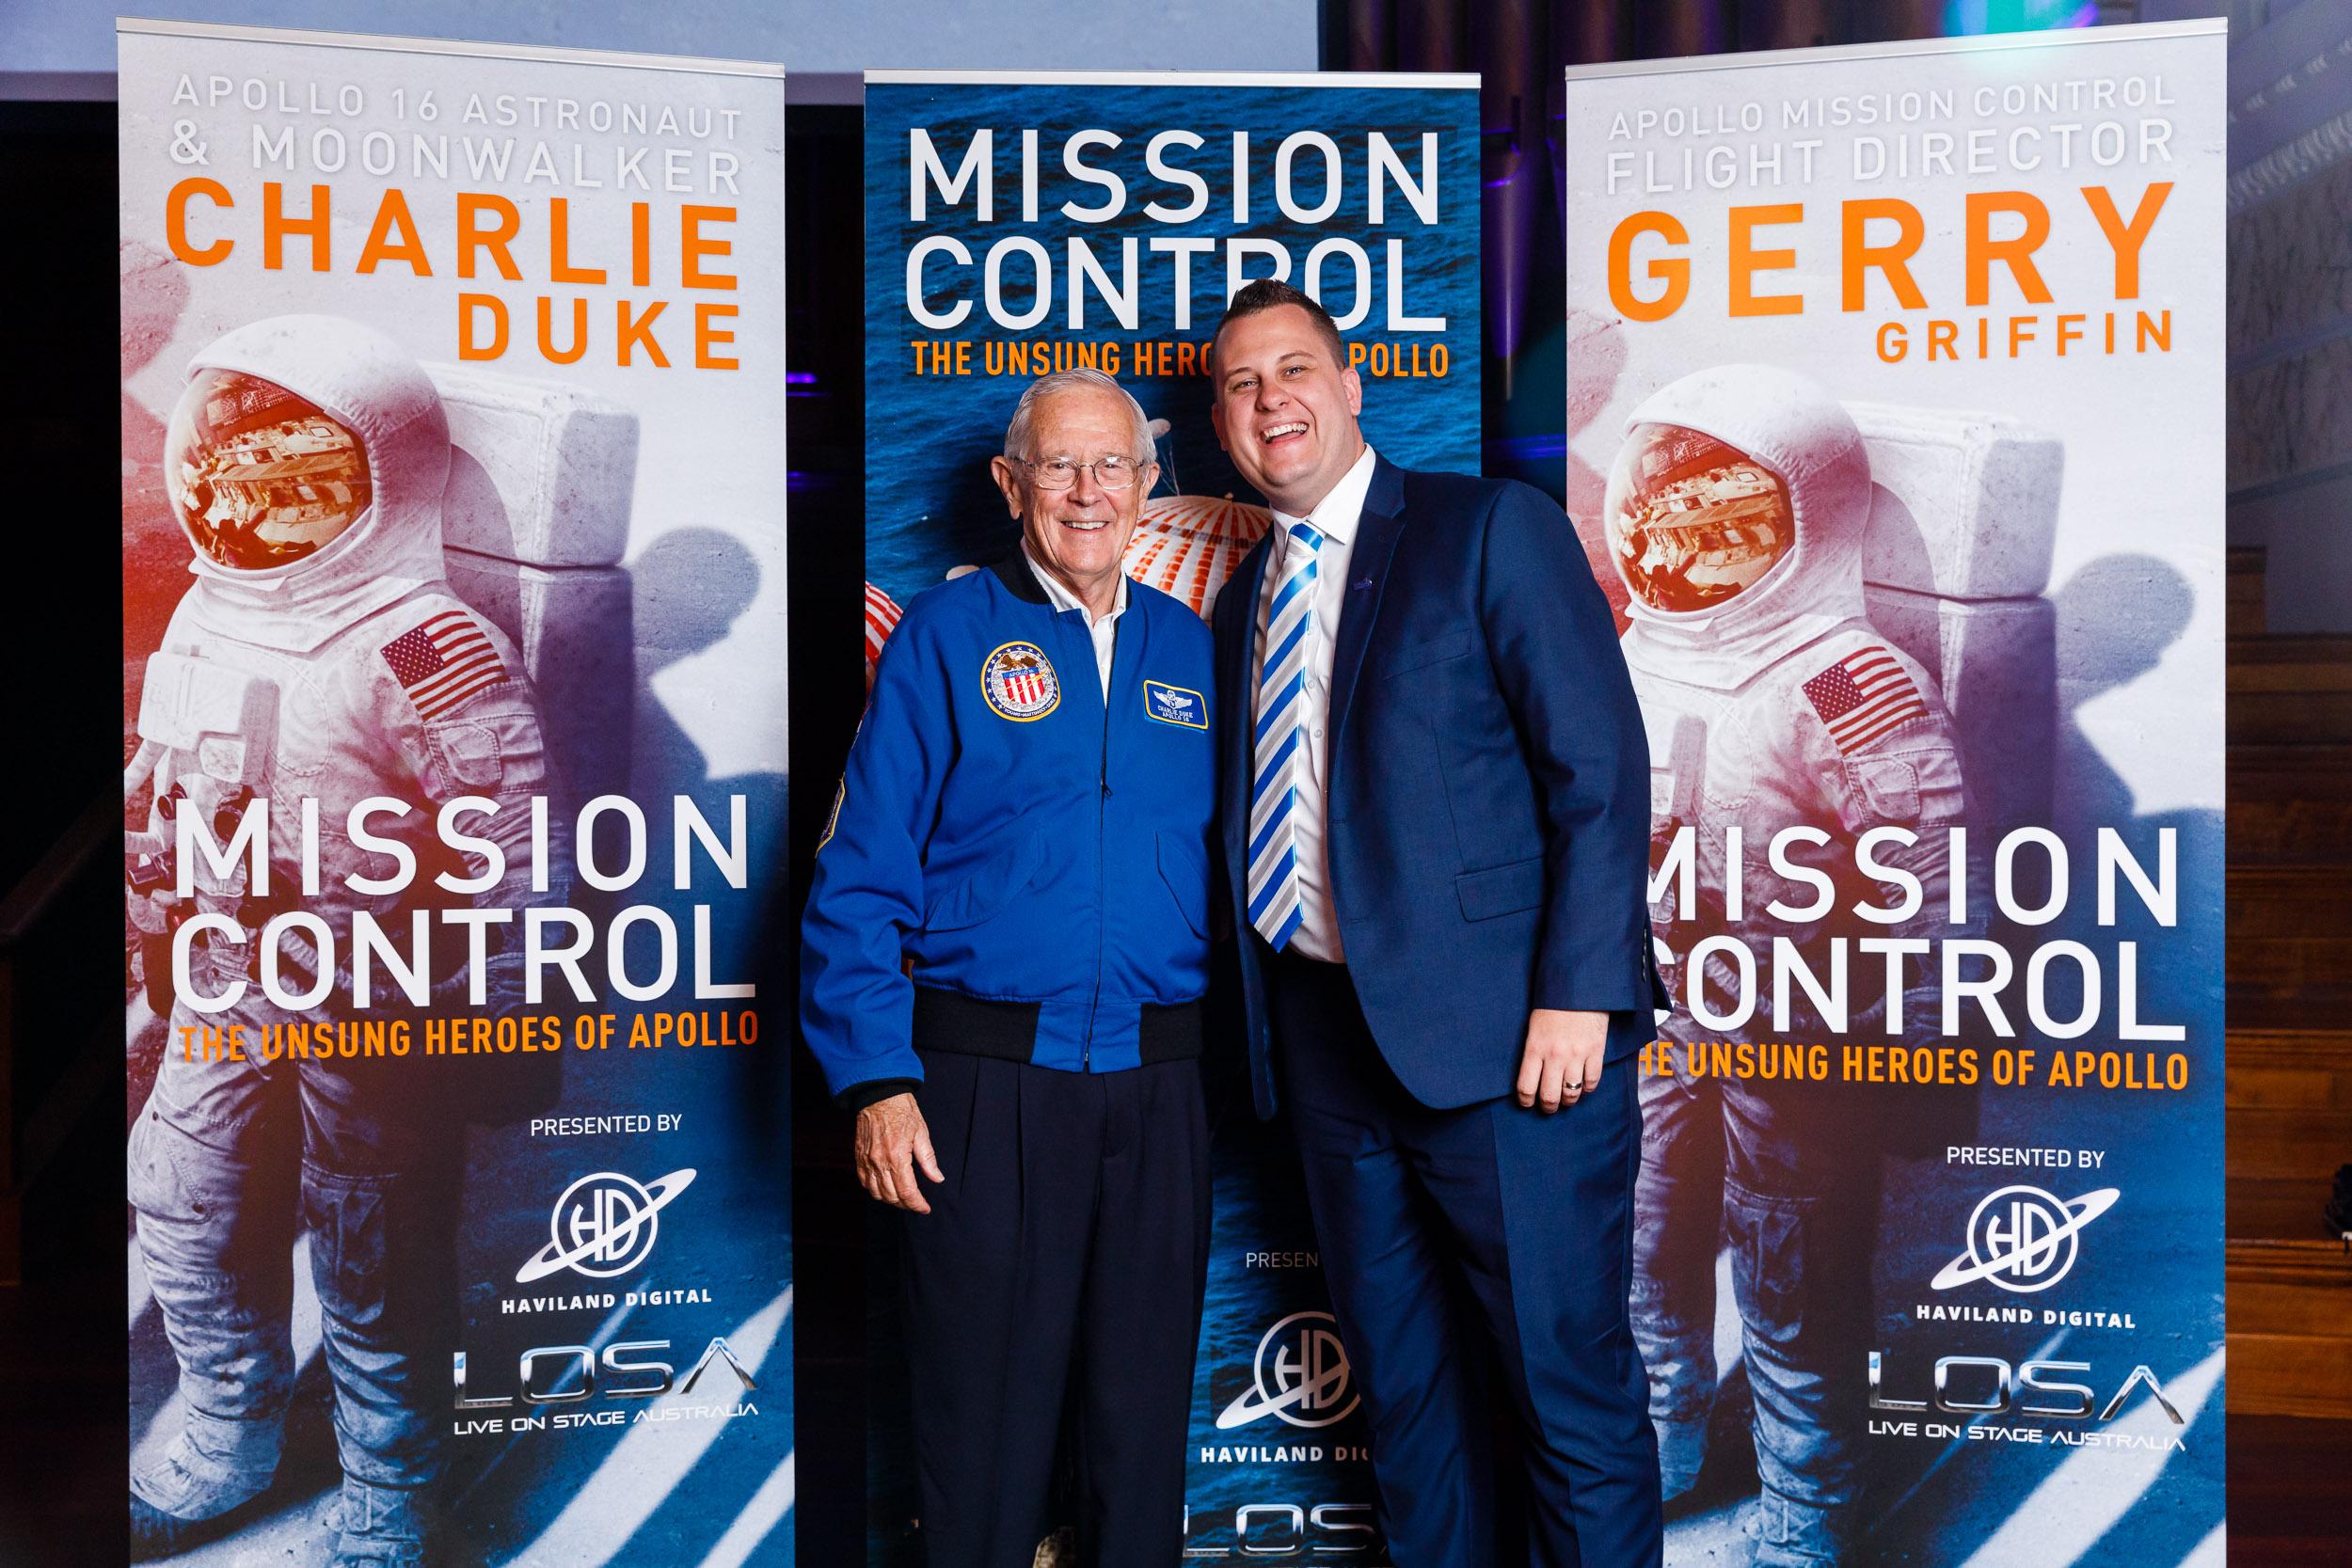 Mission Control The Unsung Heroes of Apollo Brisbane Town Hall 2018